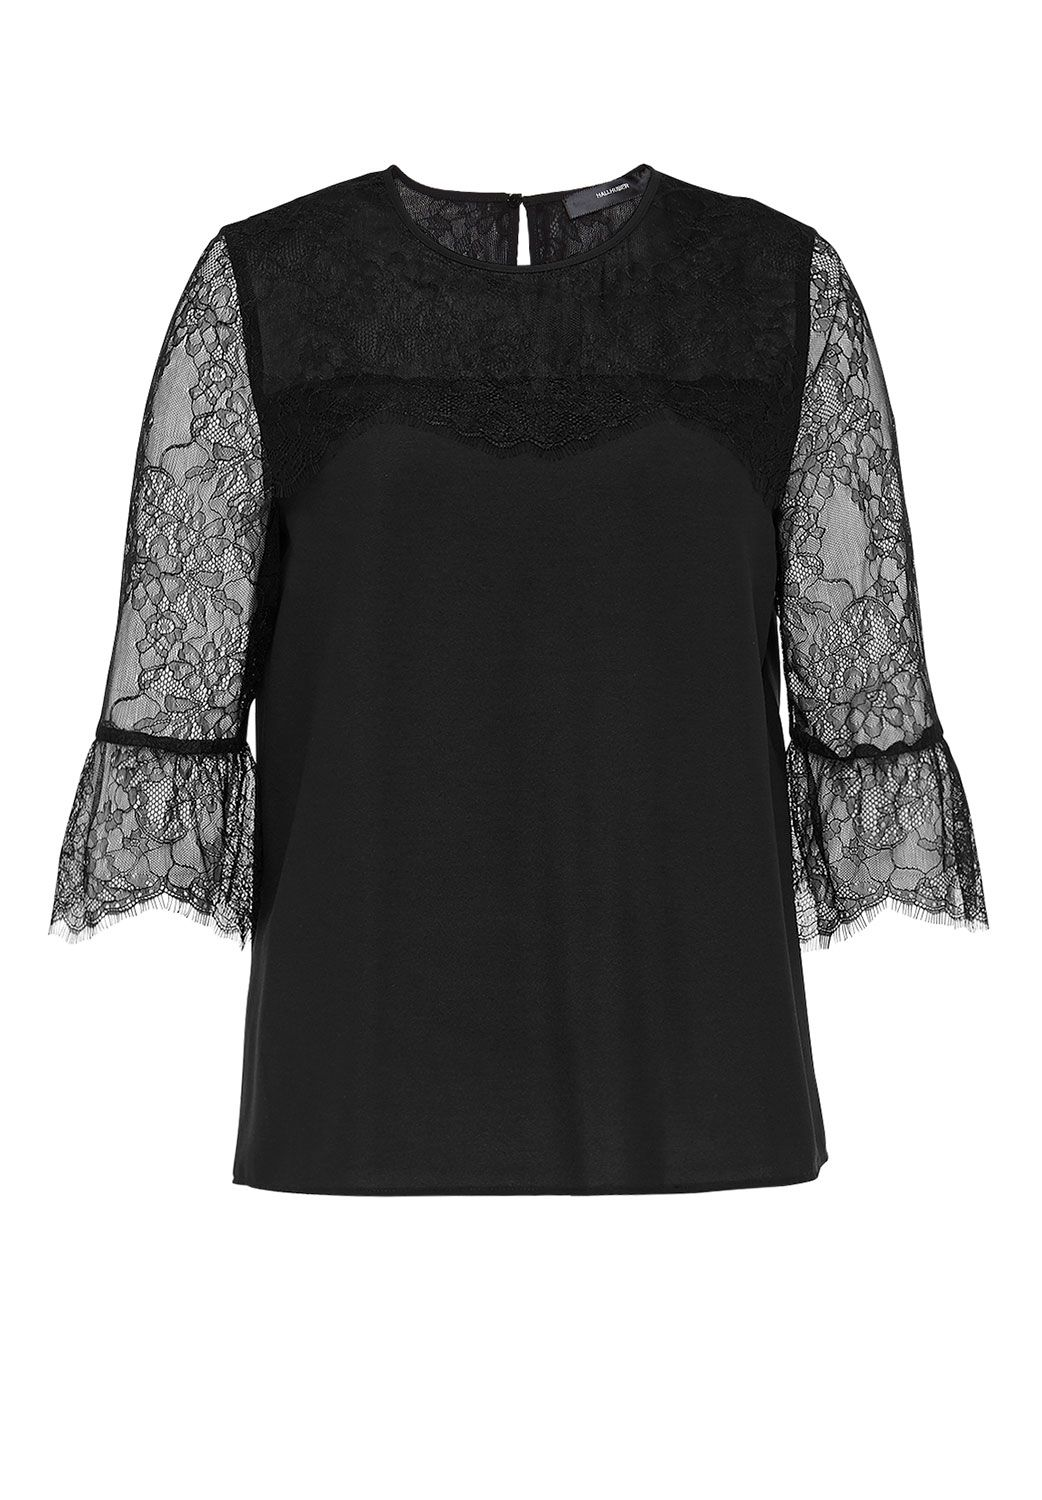 Hallhuber Pleated Lace Blouse, Black